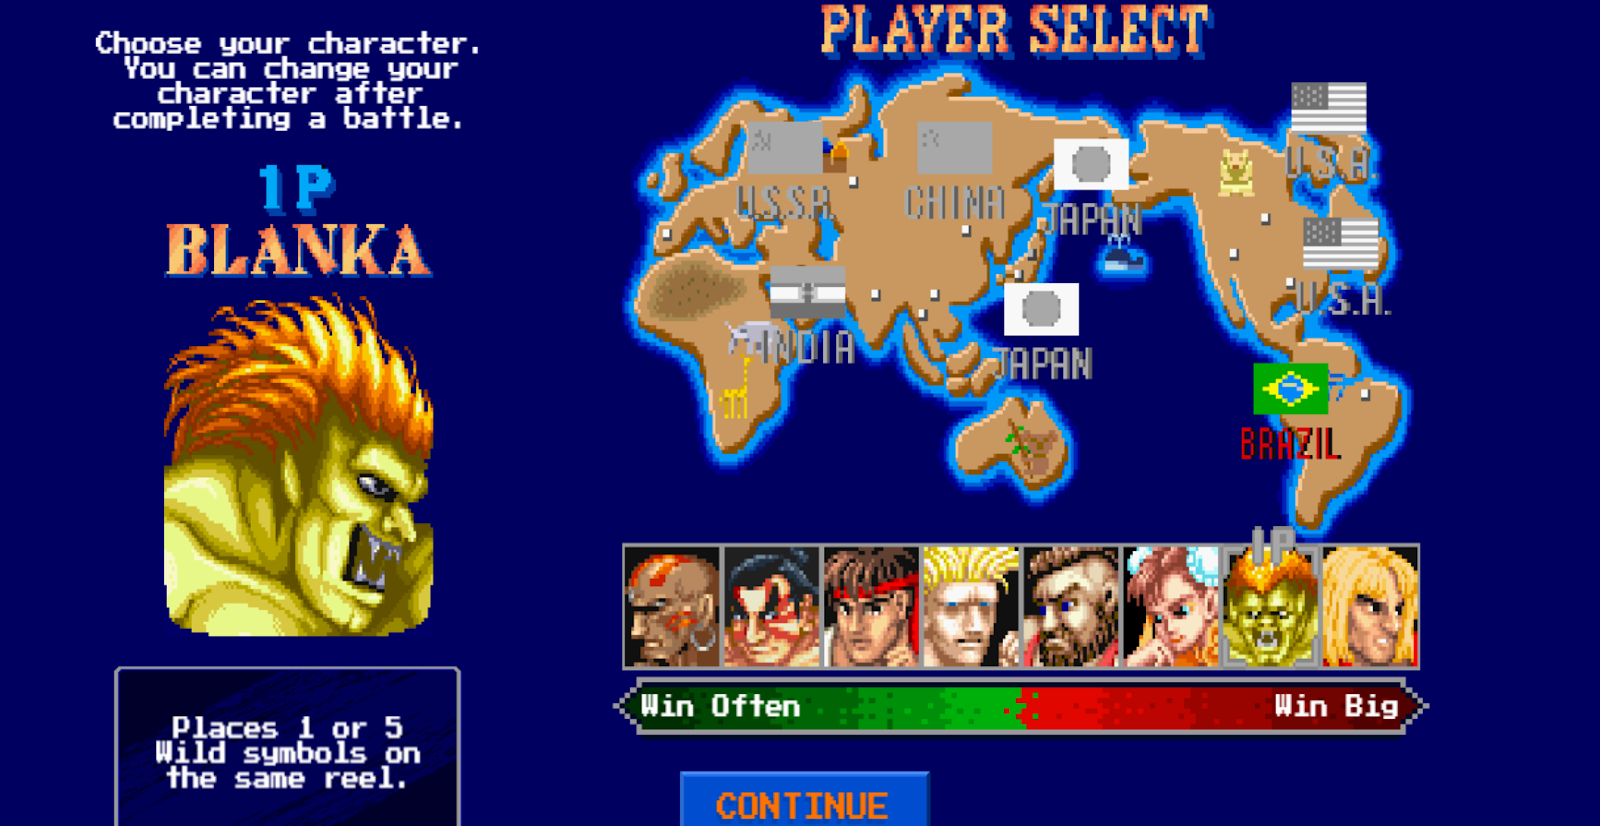 Blanka is one of the eight characters you can play as on Street Fighter II: The World Warrior Slot